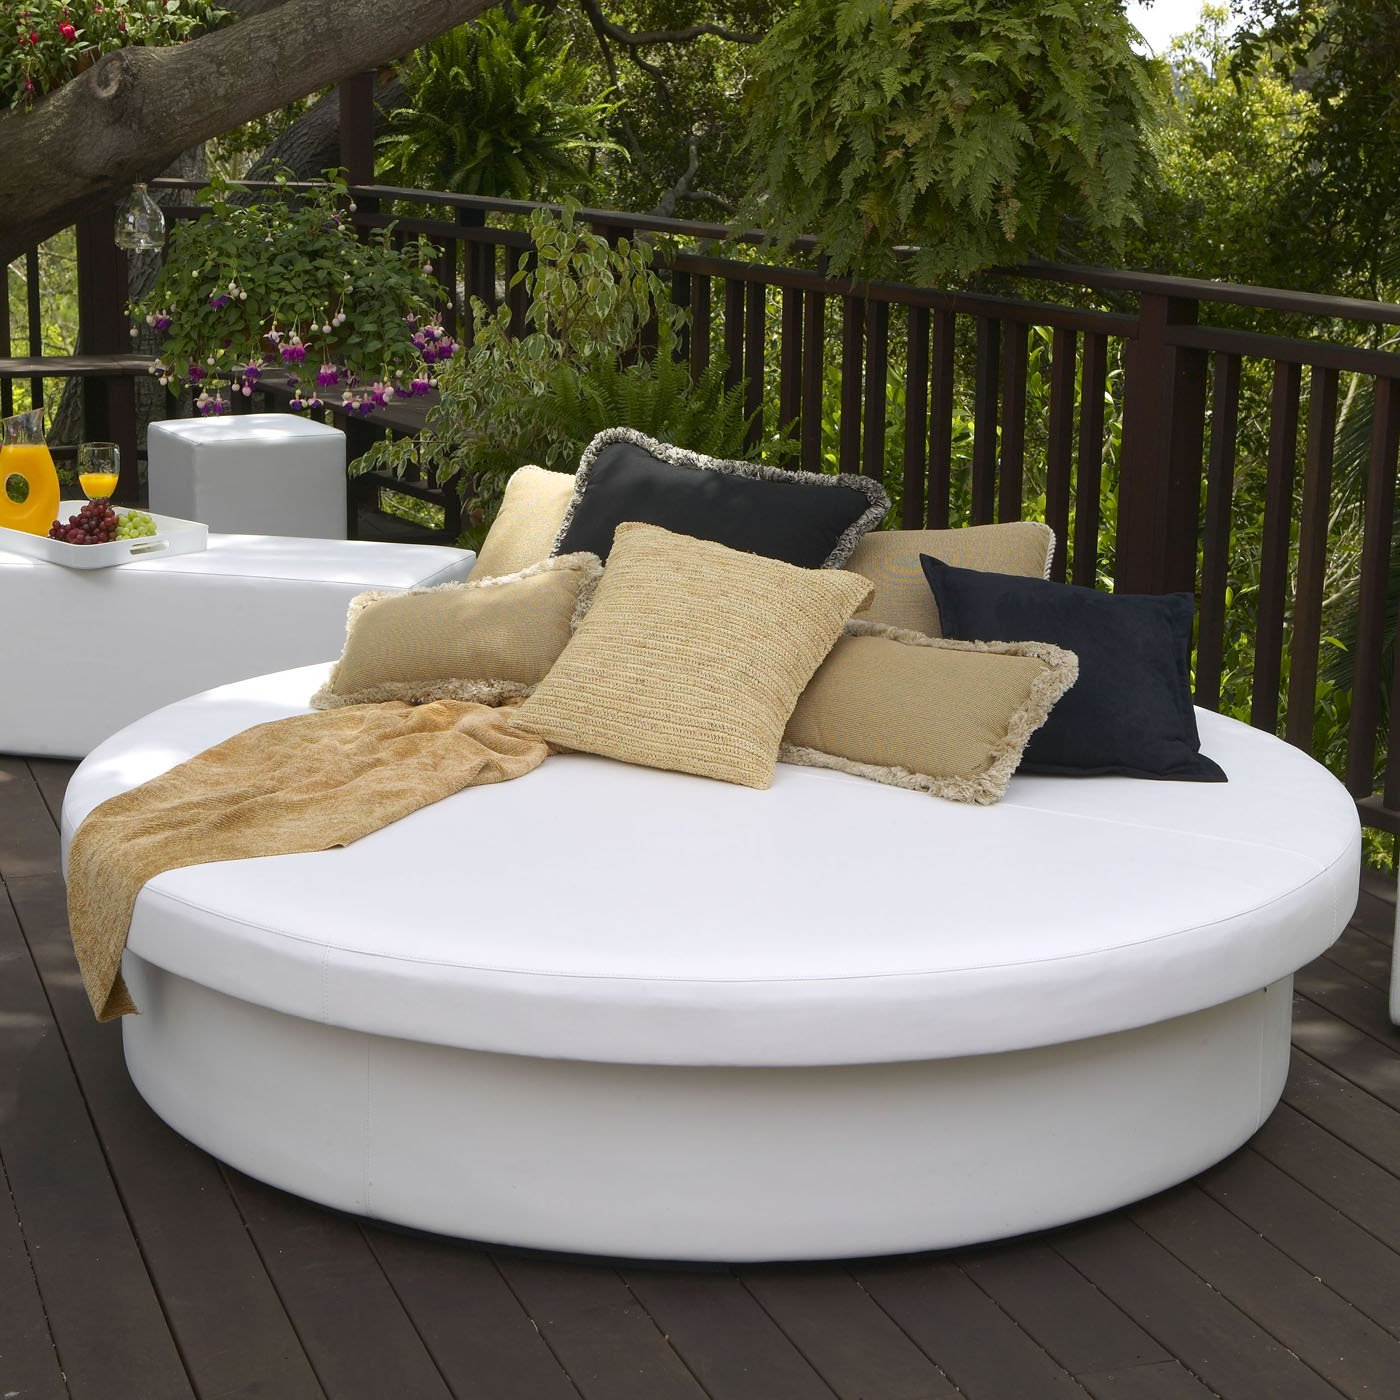 56 Outdoor Daybed, Riviera Modern Outdoor Leisure Daybed For Well Known Resort Patio Daybeds (View 2 of 20)